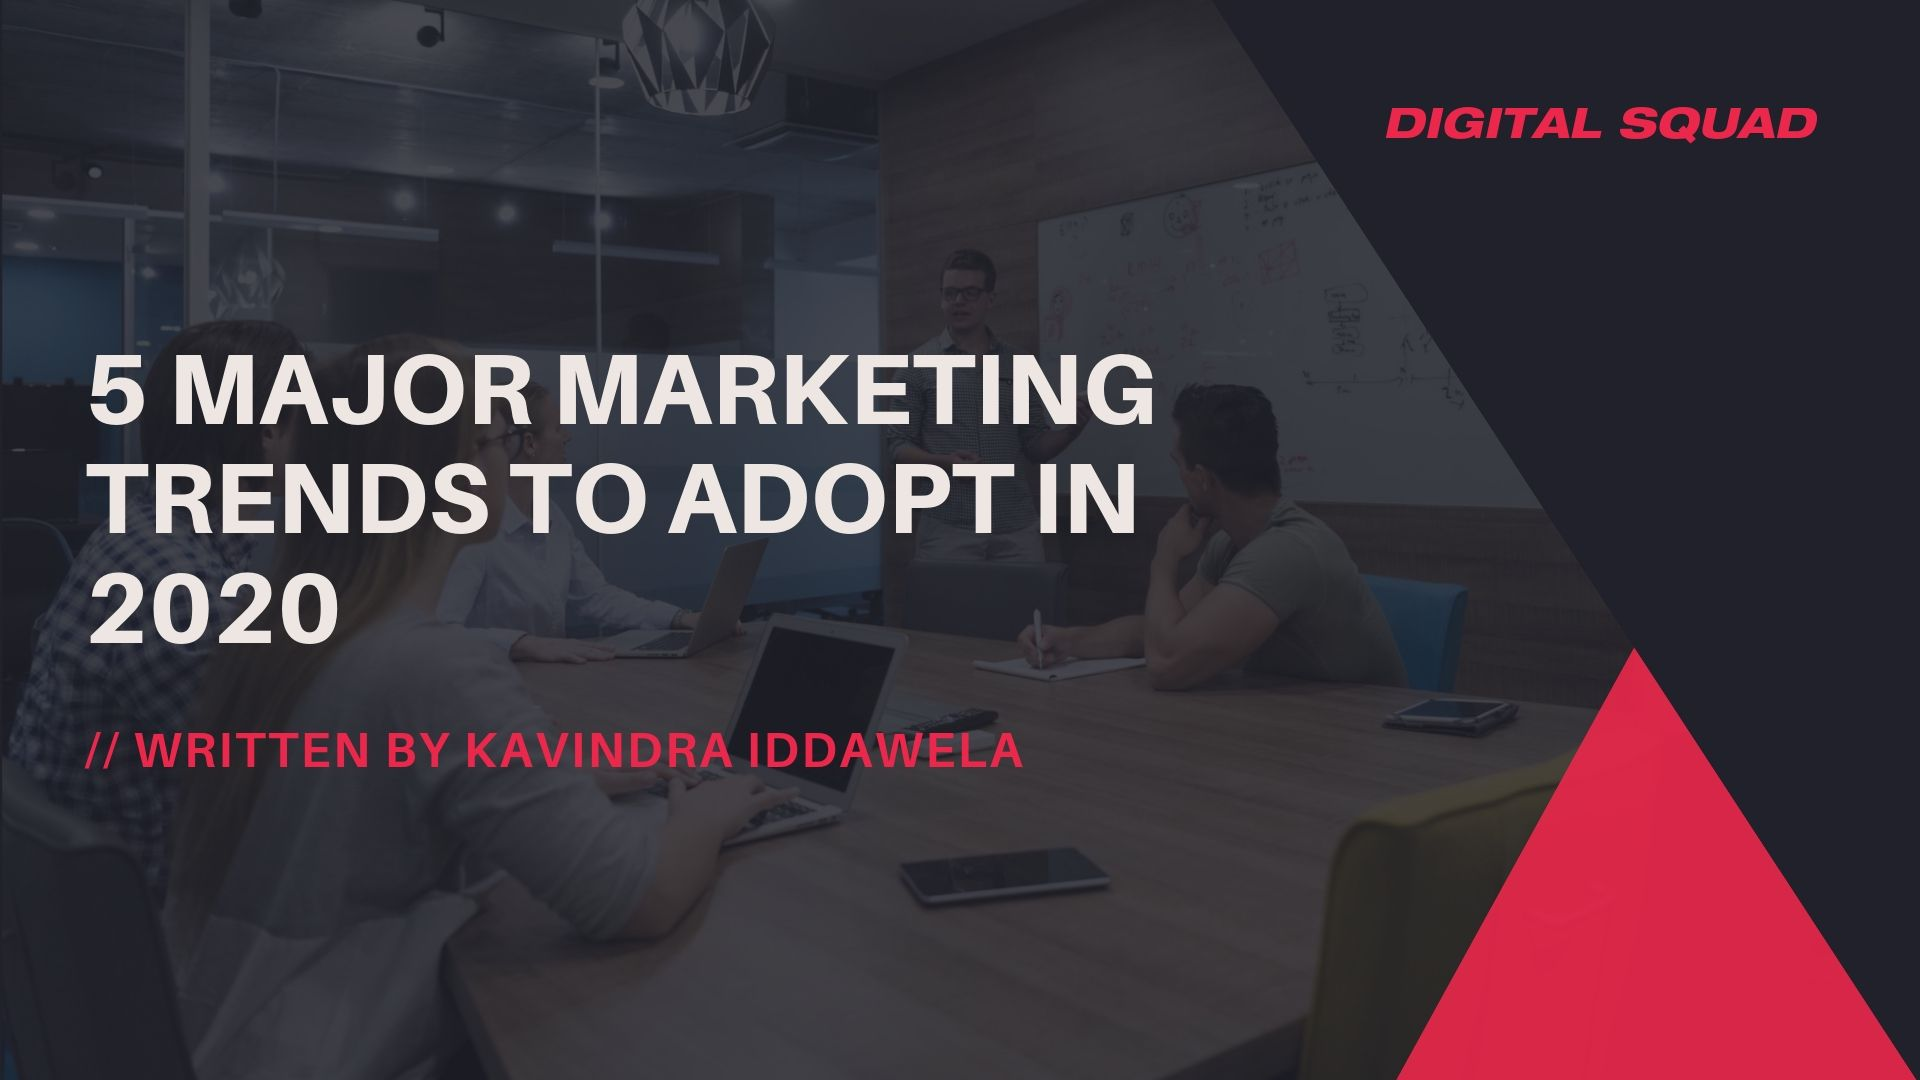 5 Major Marketing Trends to Adopt in 2020